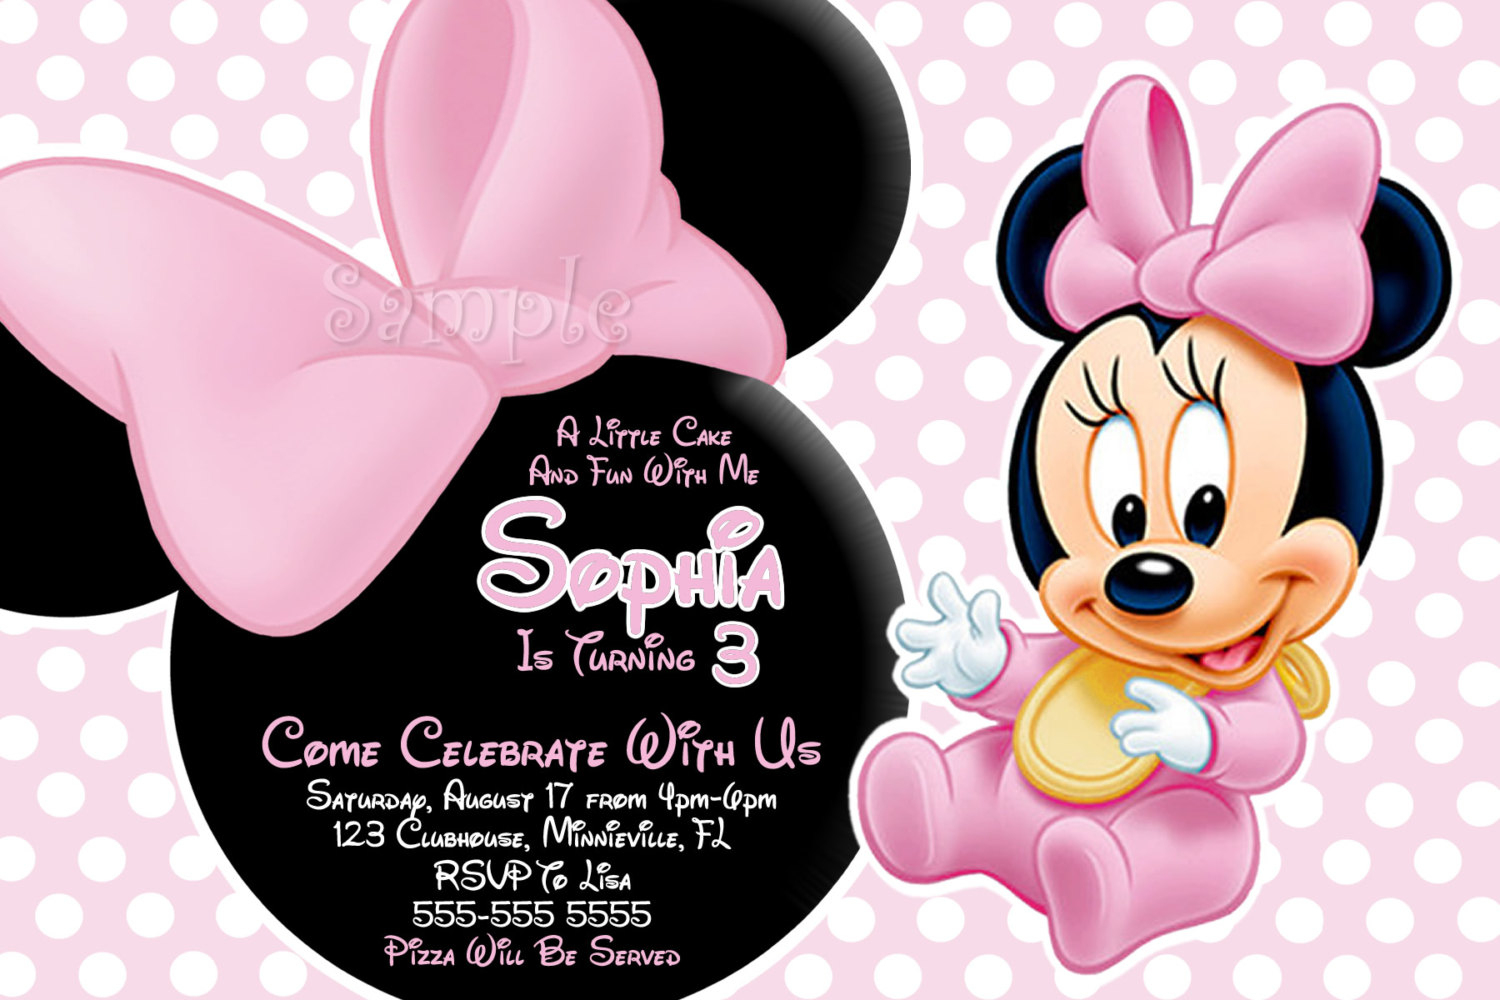 Free Printable Baby Minnie Mouse Invitations 36 Inch Shower - Free Printable Baby Mickey Mouse Birthday Invitations